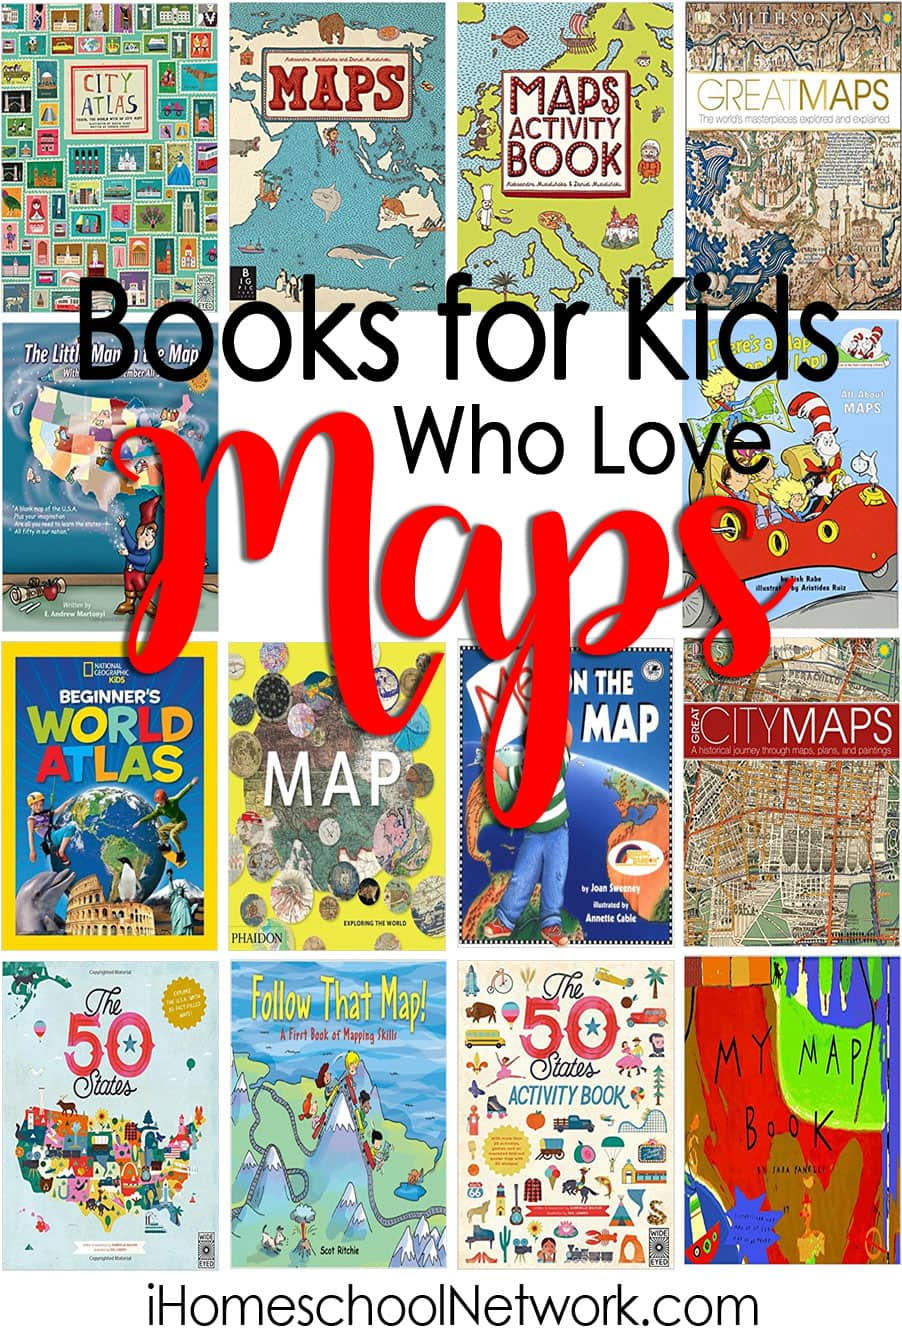 15 Books for Kids Who Love Maps